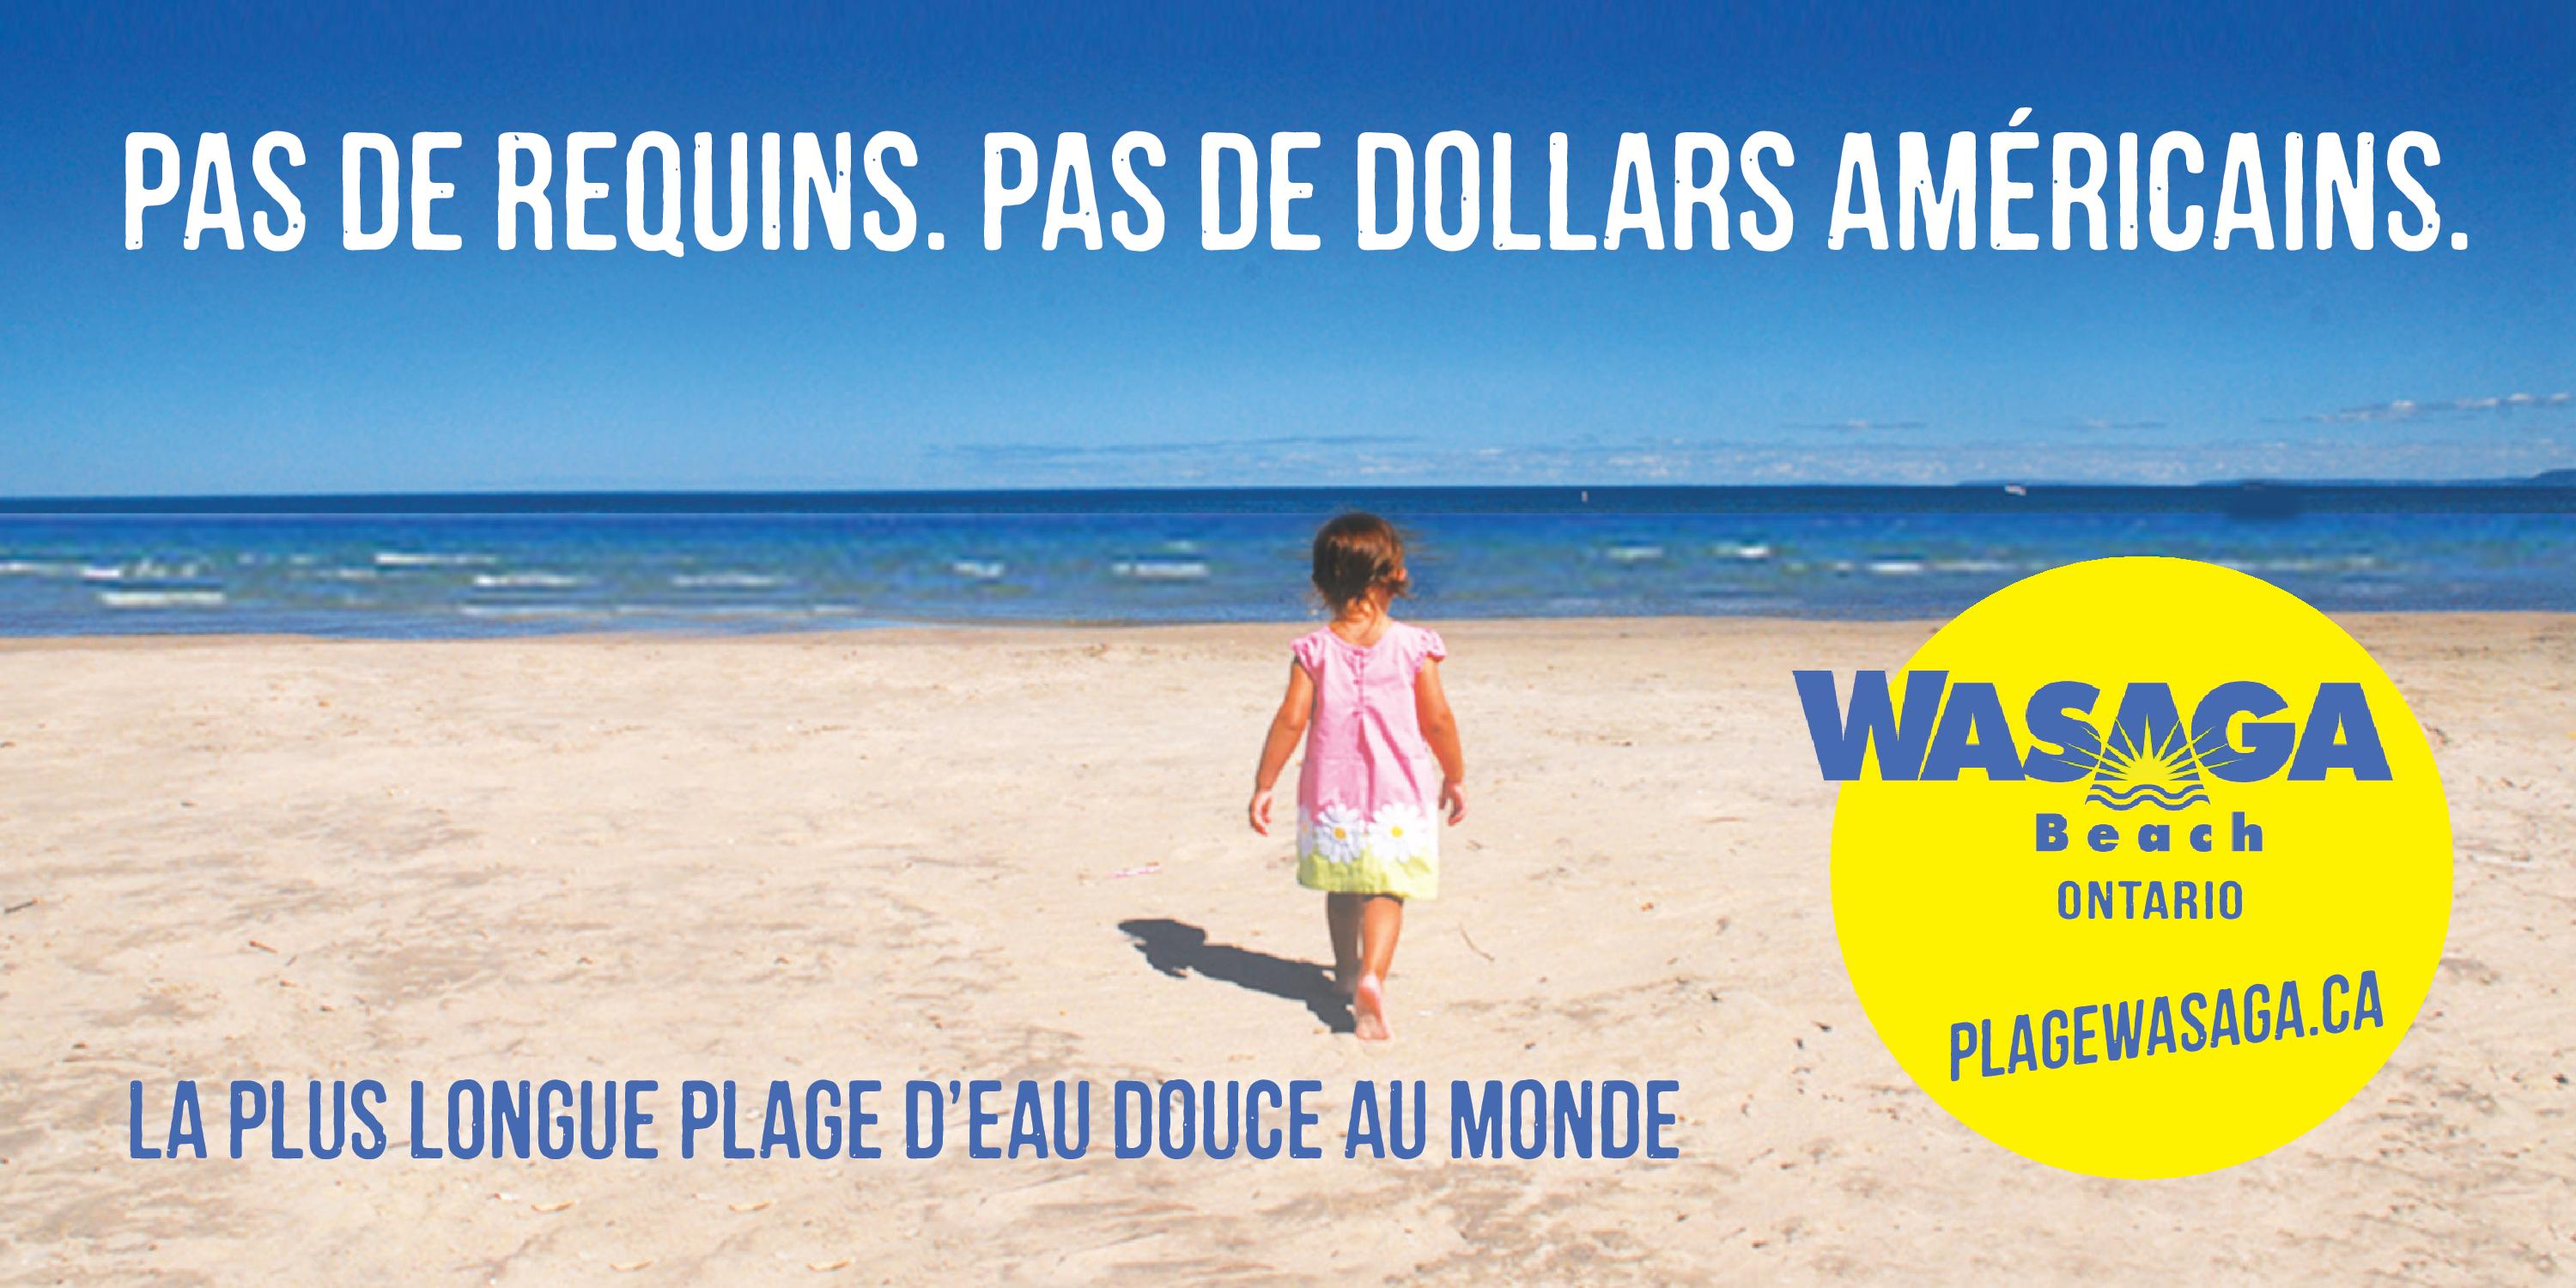 The Verdict Wasaga Beach Is For Quebecers 187 Media In Canada